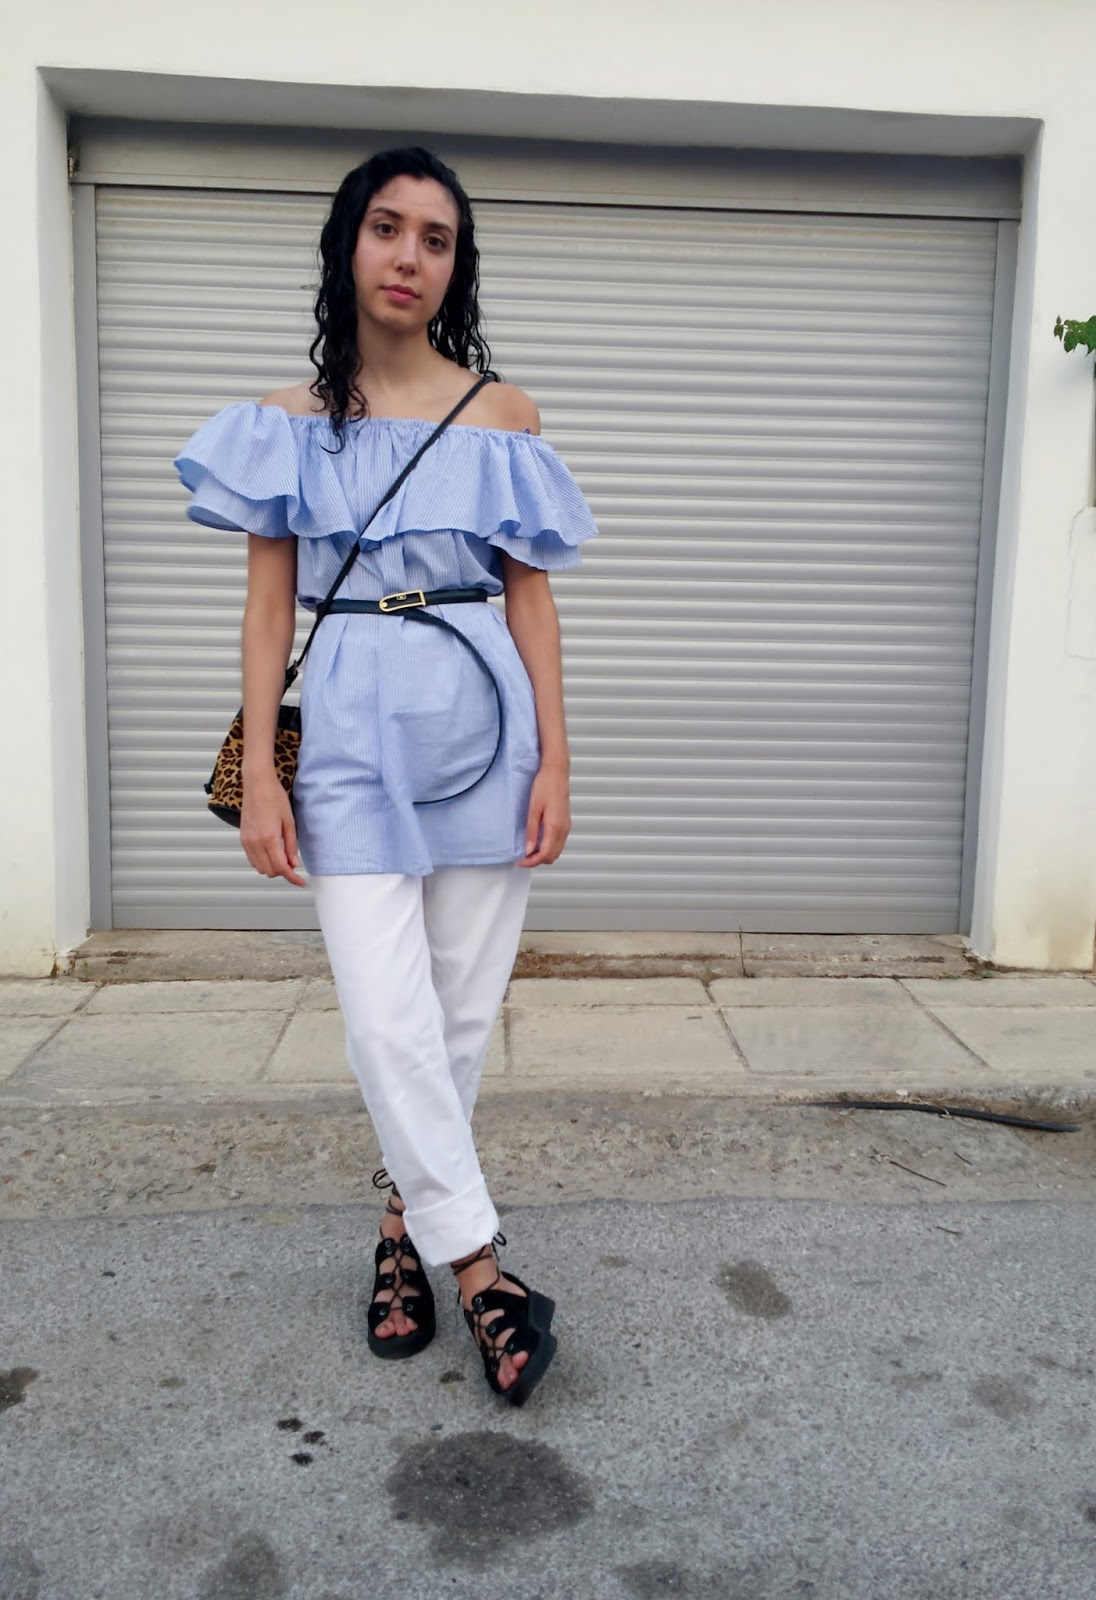 How to wear the Off-shoulder dress: With a Belt over Jeans